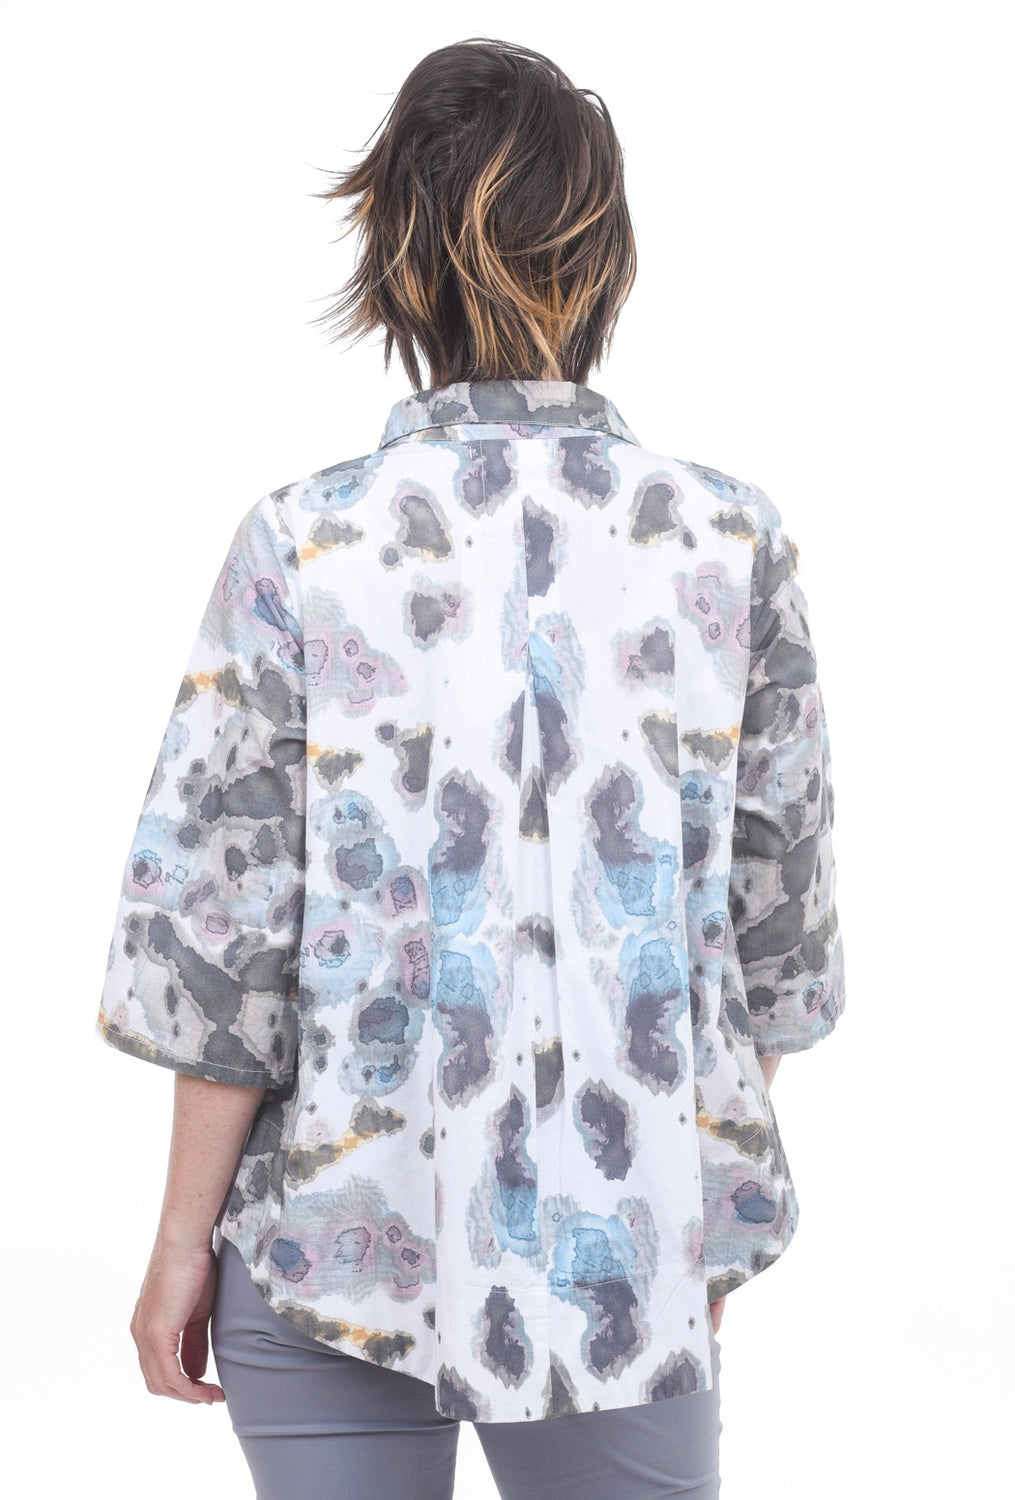 Snapdragon & Twig Alice Shirt Jacket, Healing Dream